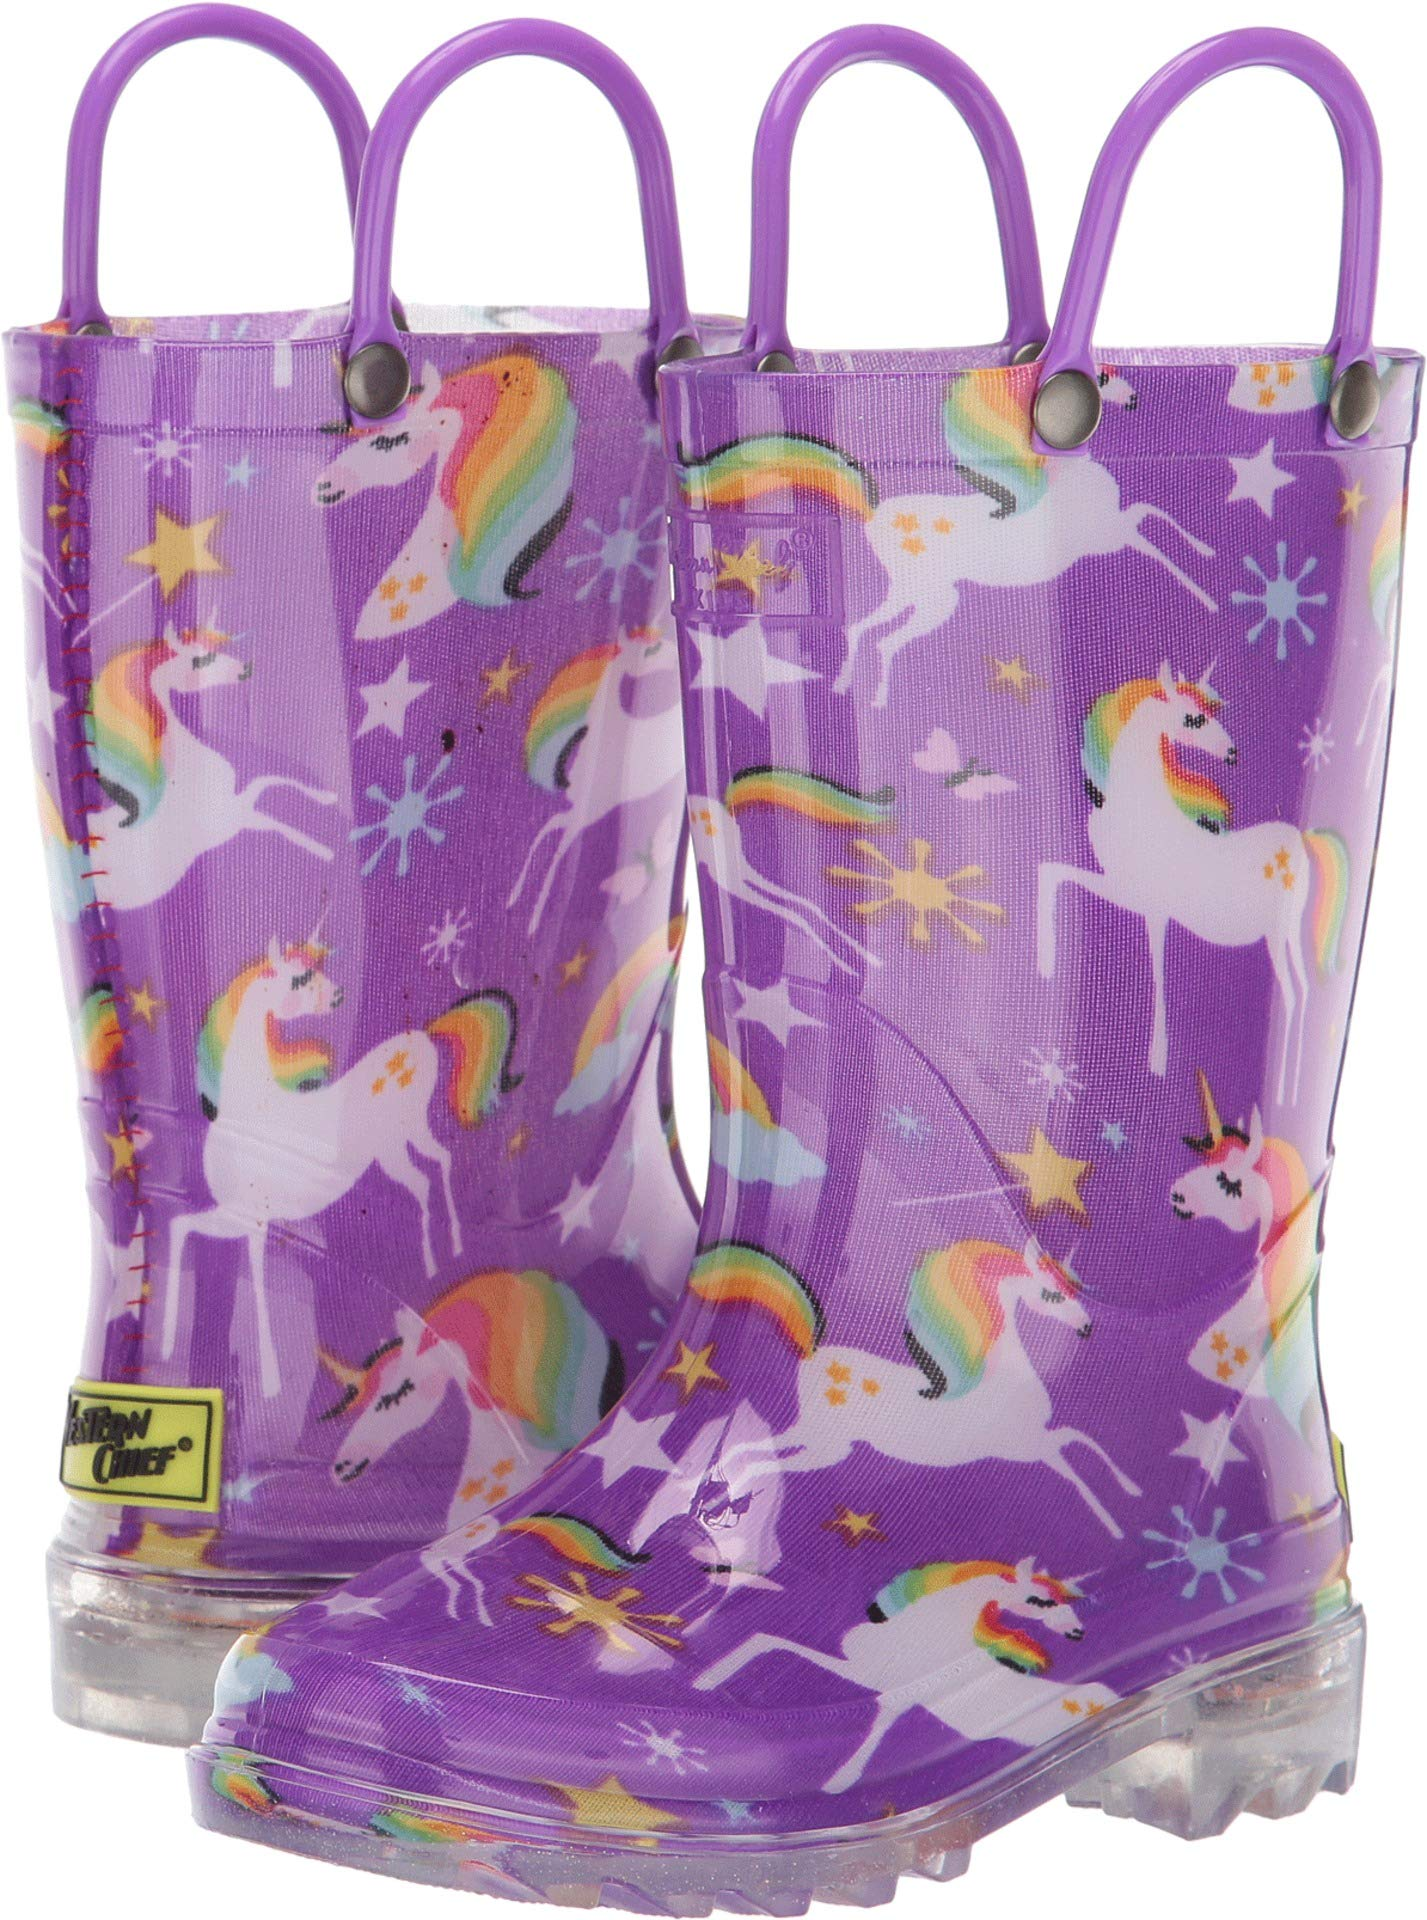 Western Chief Girls' Waterproof Rain Boots That Light Up Each Step, Rainbow Unicorn, 12 M US Little Kid by Western Chief (Image #1)